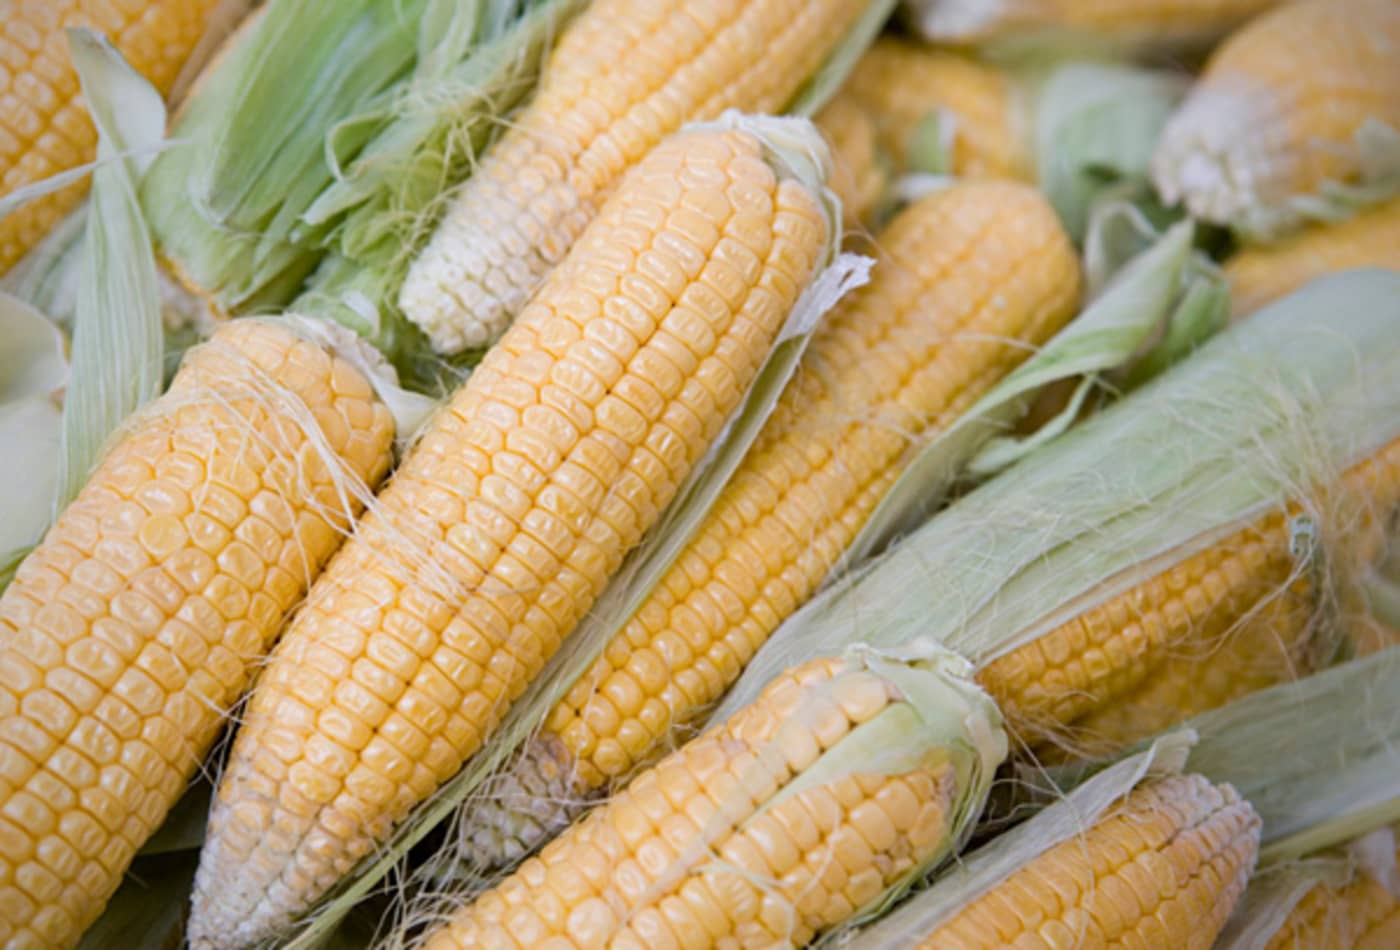 CNBC_commodities_biggest_price_moves_corn.jpg